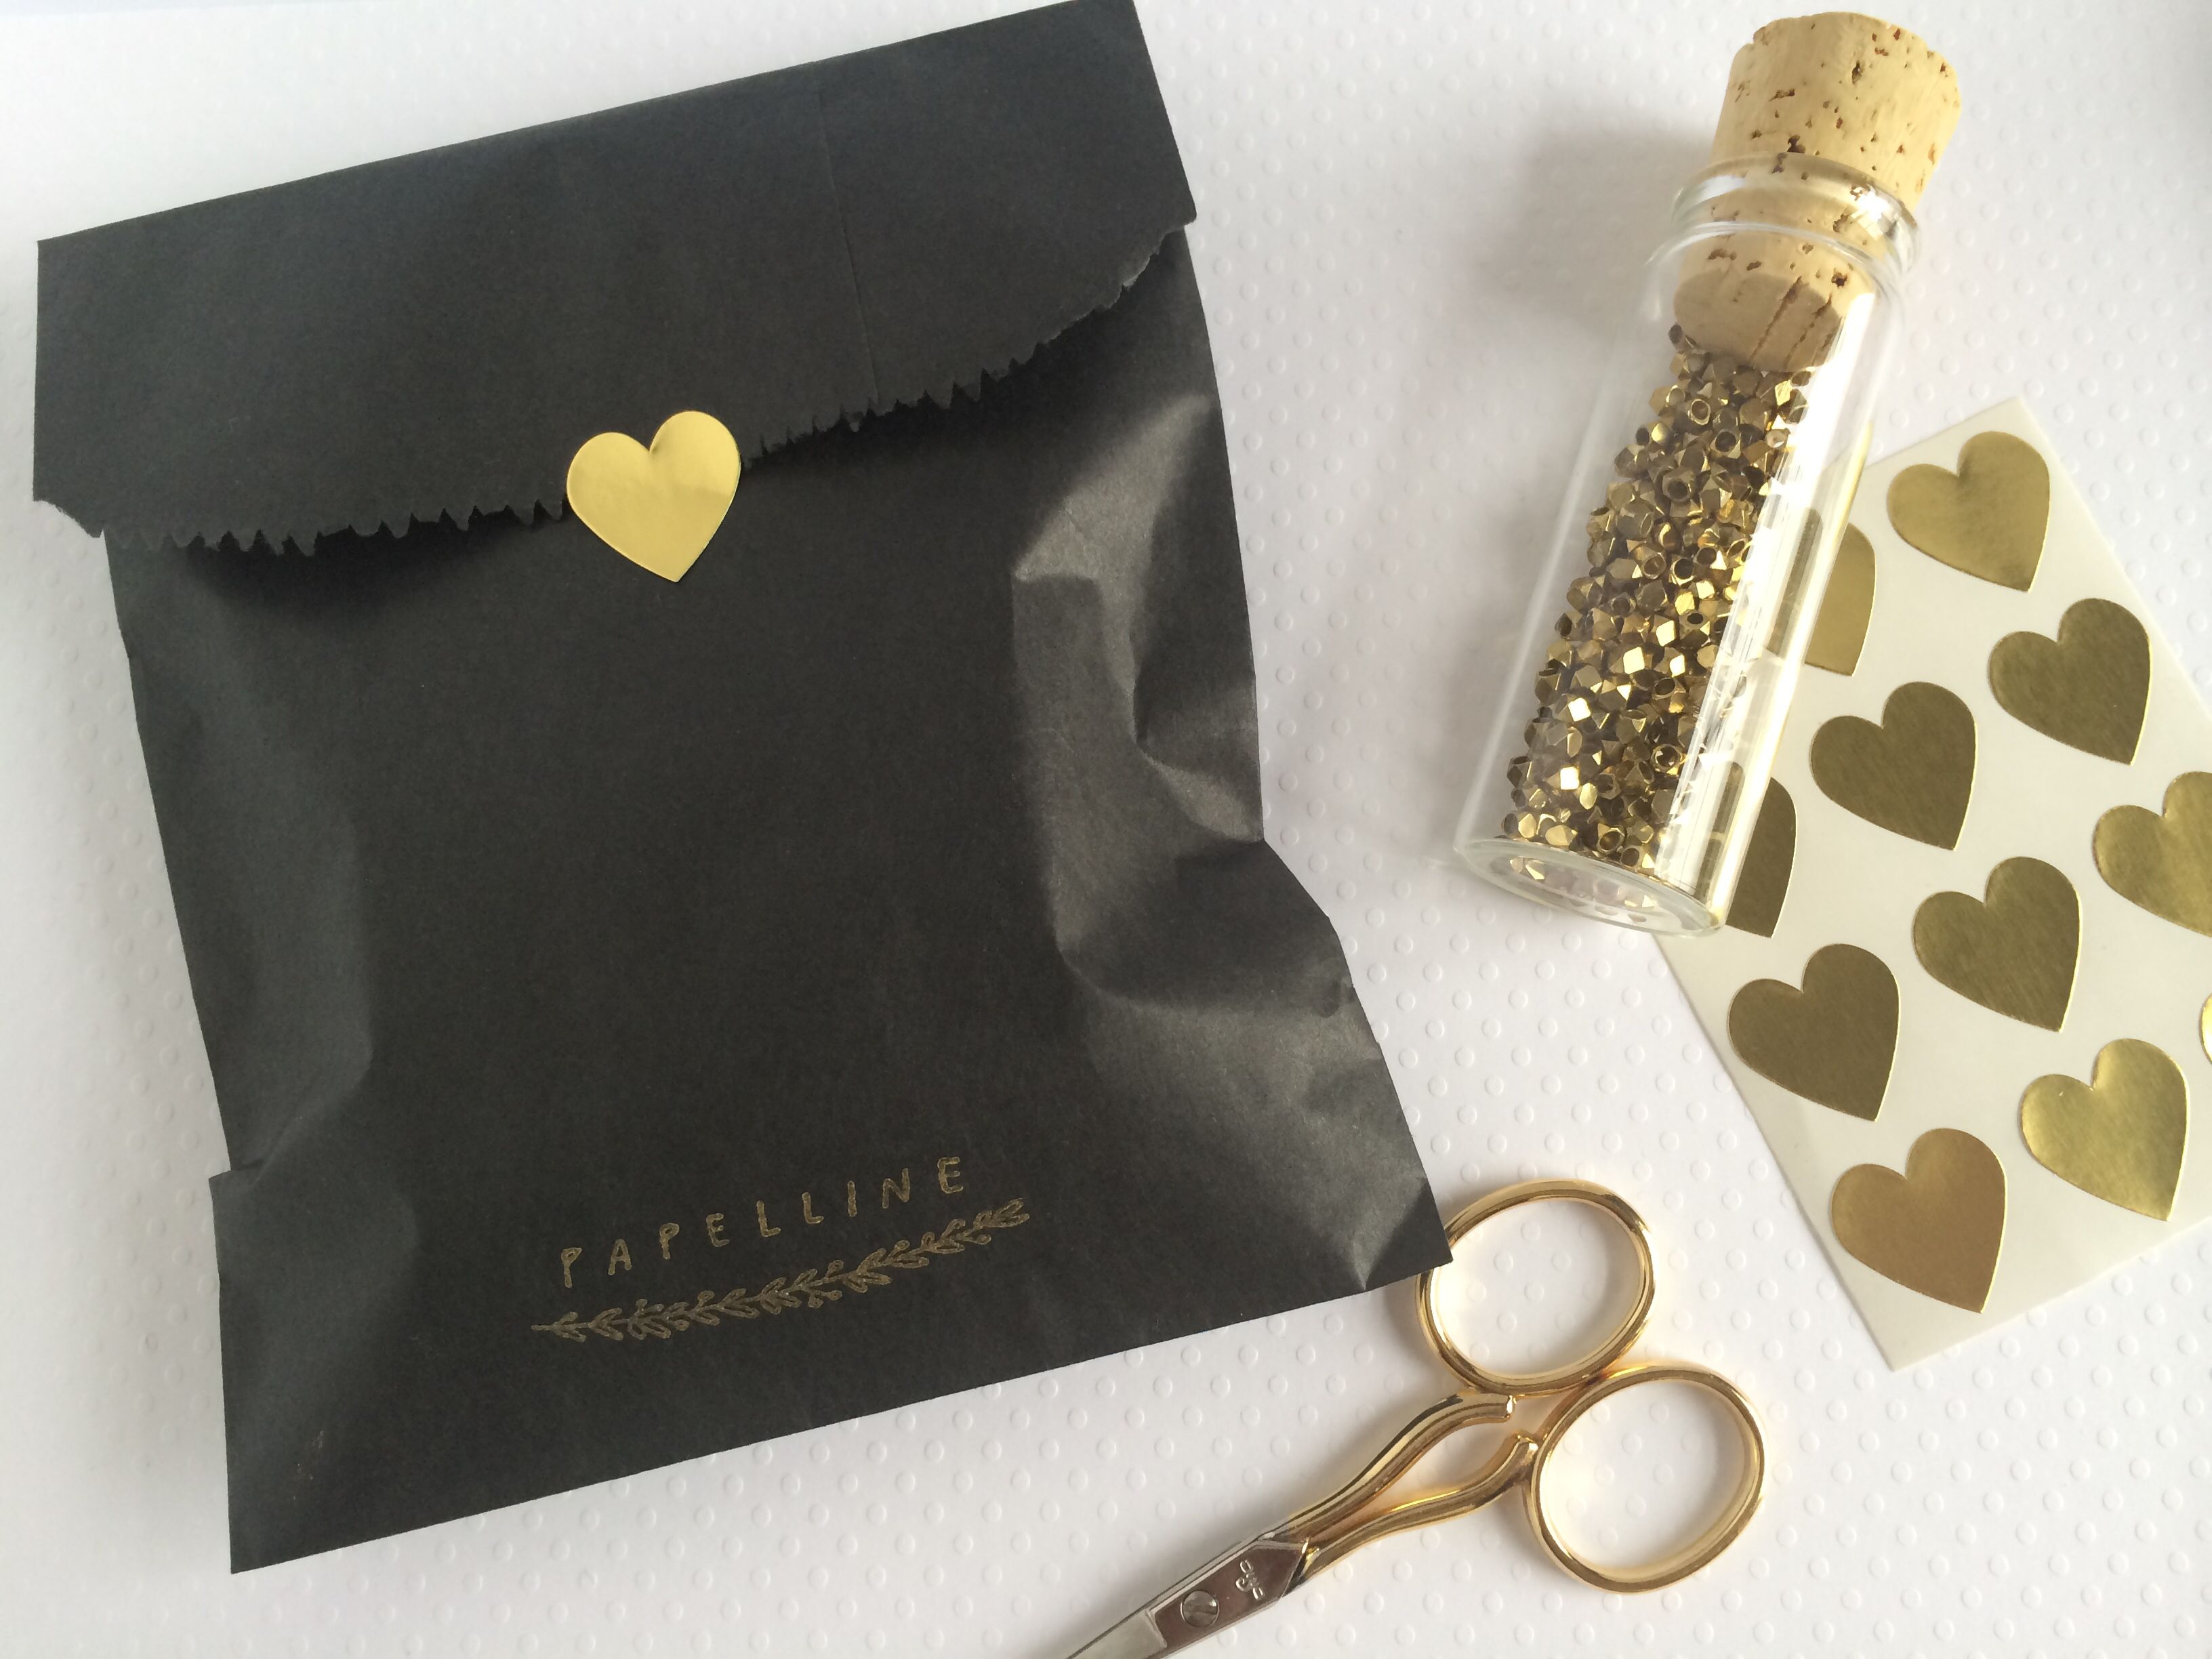 jewelry packaging shop papelline pinterest